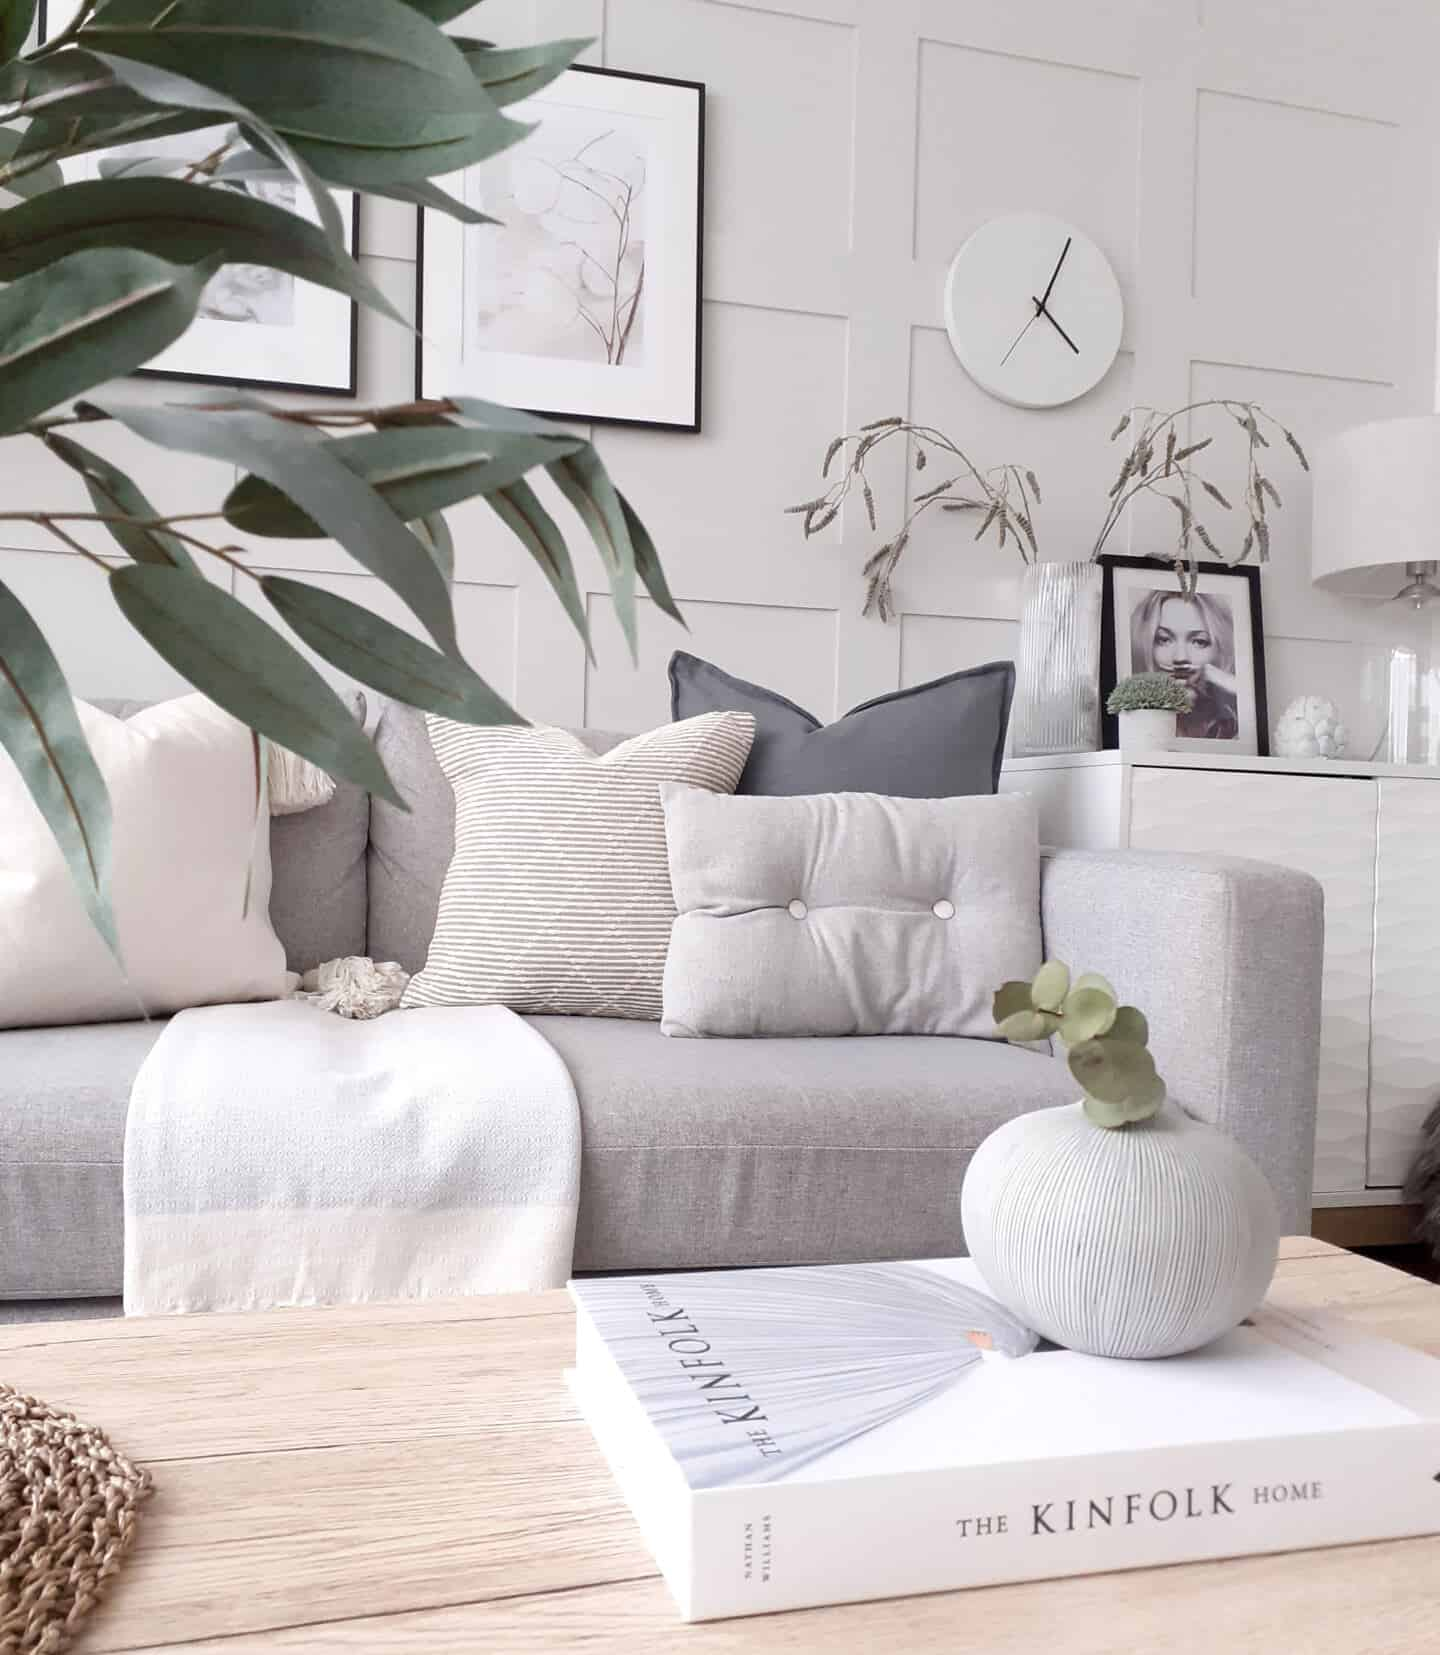 Affordable luxury homewares from Price & Coco Interiors. A small textured vase on a book on a coffee table in a monochrome Scandi living room.